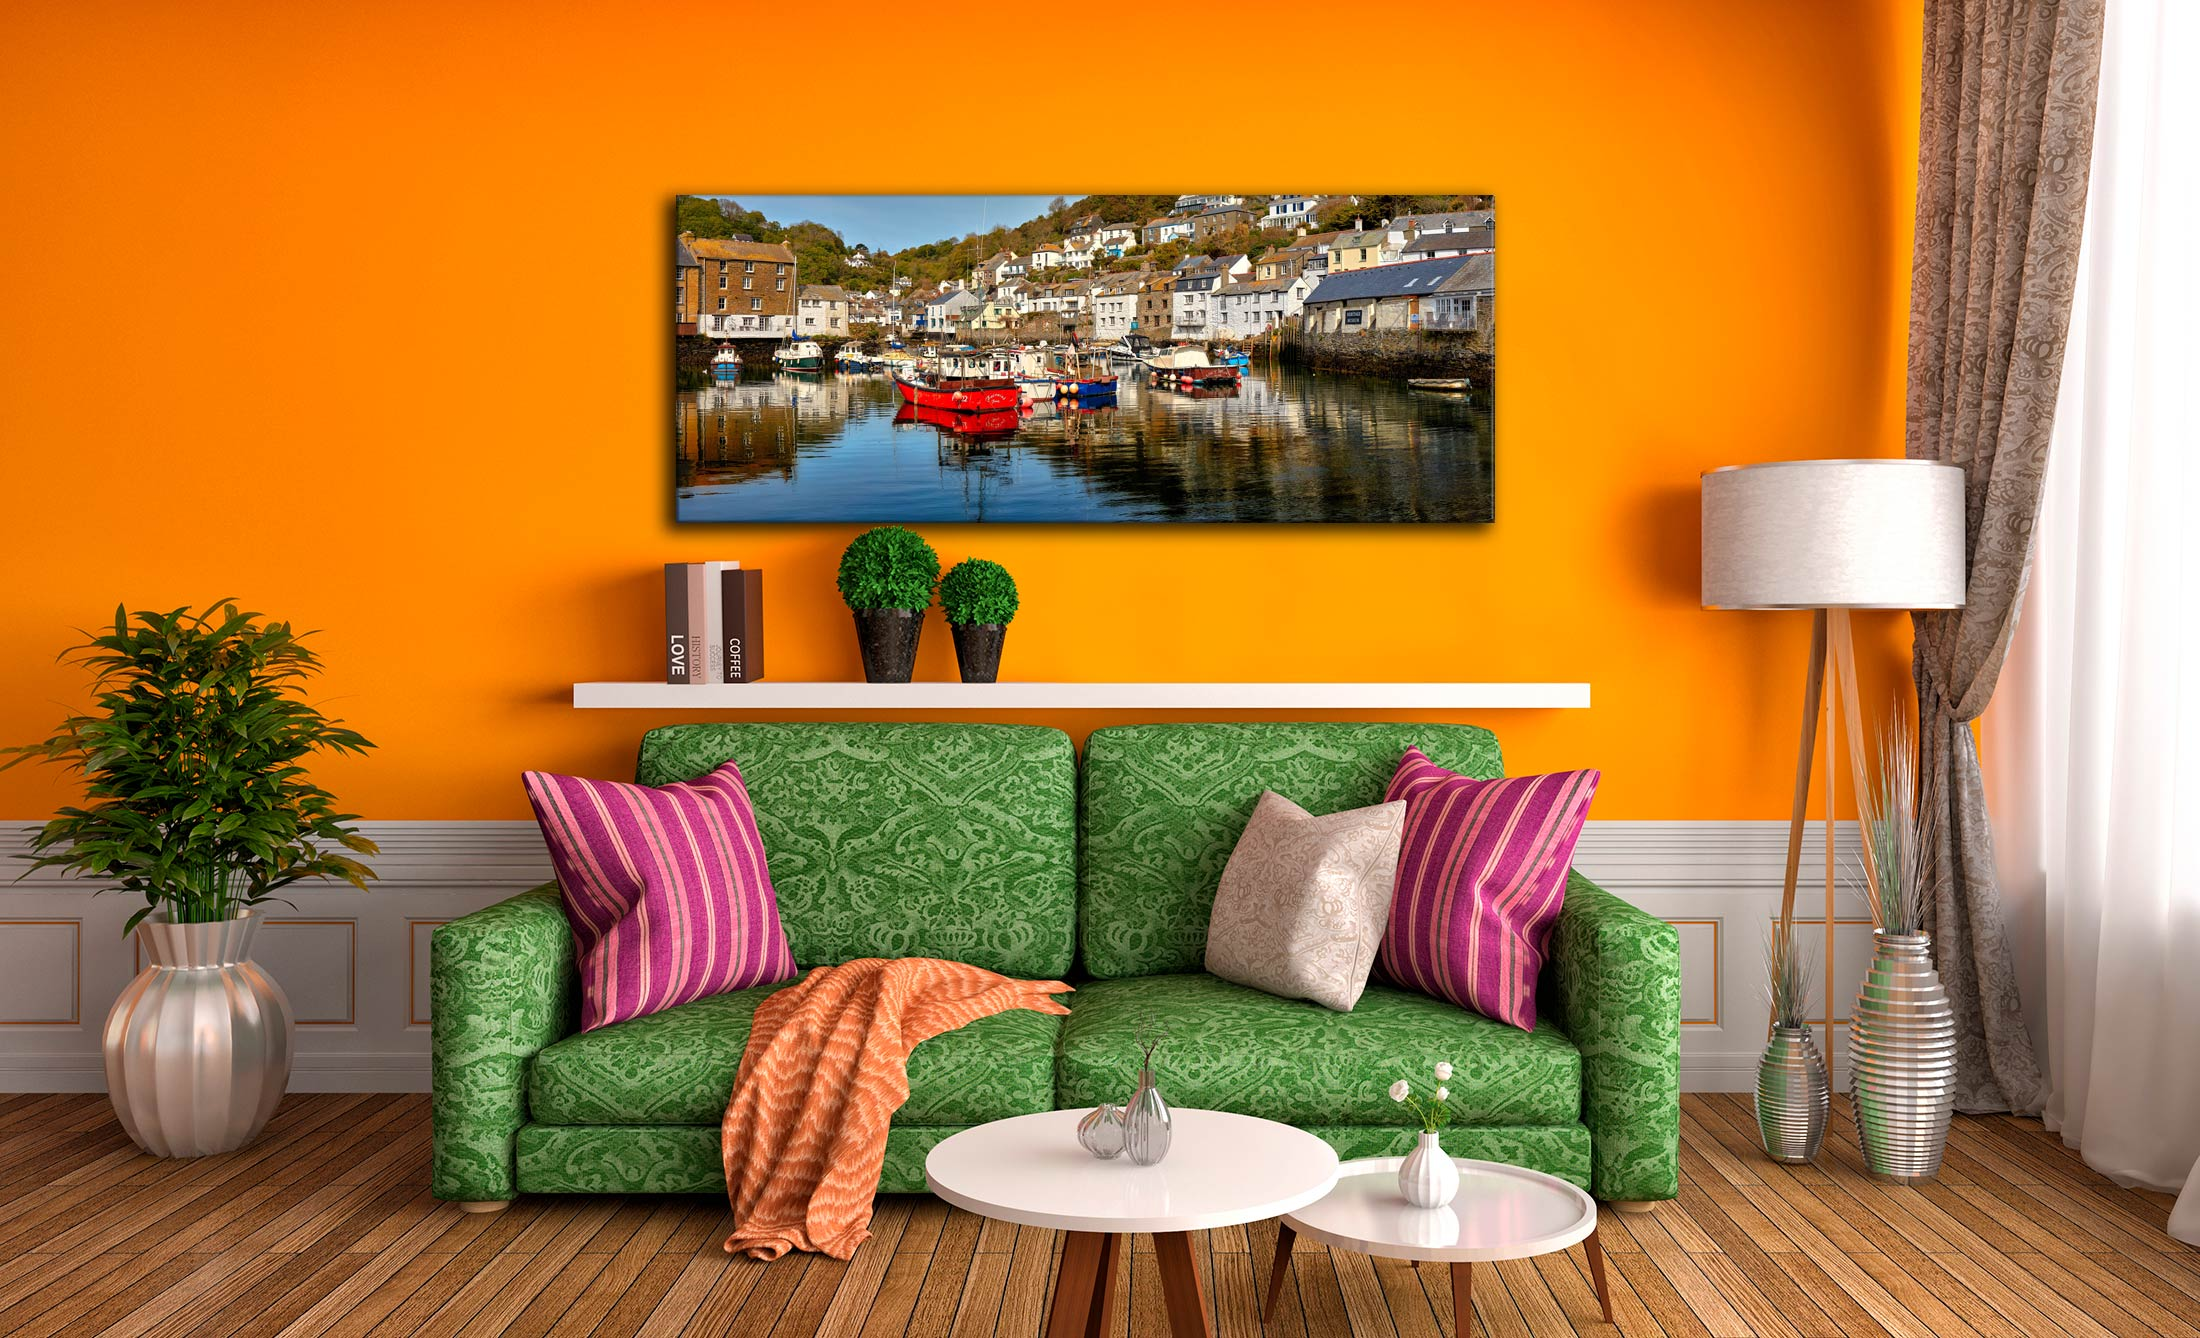 A calm morning at Polperro Harbour on the South coast of Cornwall - Print Aluminium Backing With Acrylic Glazing on Wall